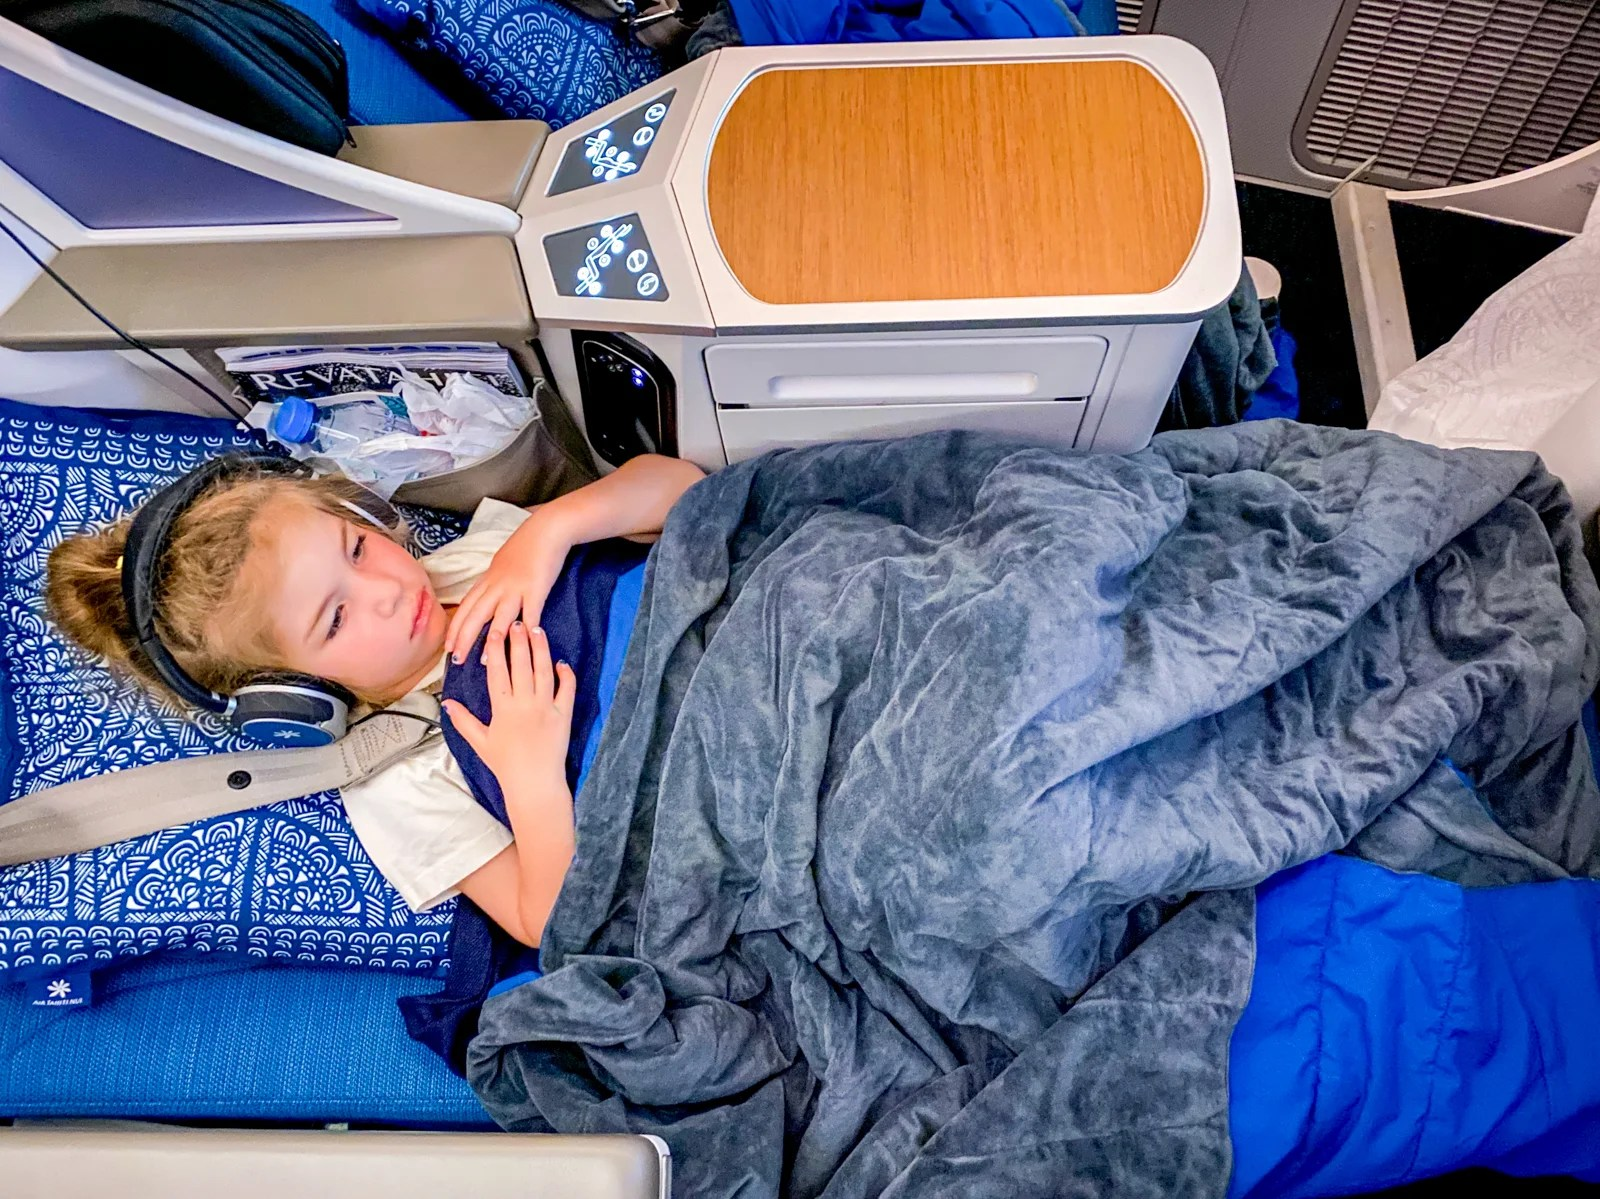 What it's really like flying business class with little kids